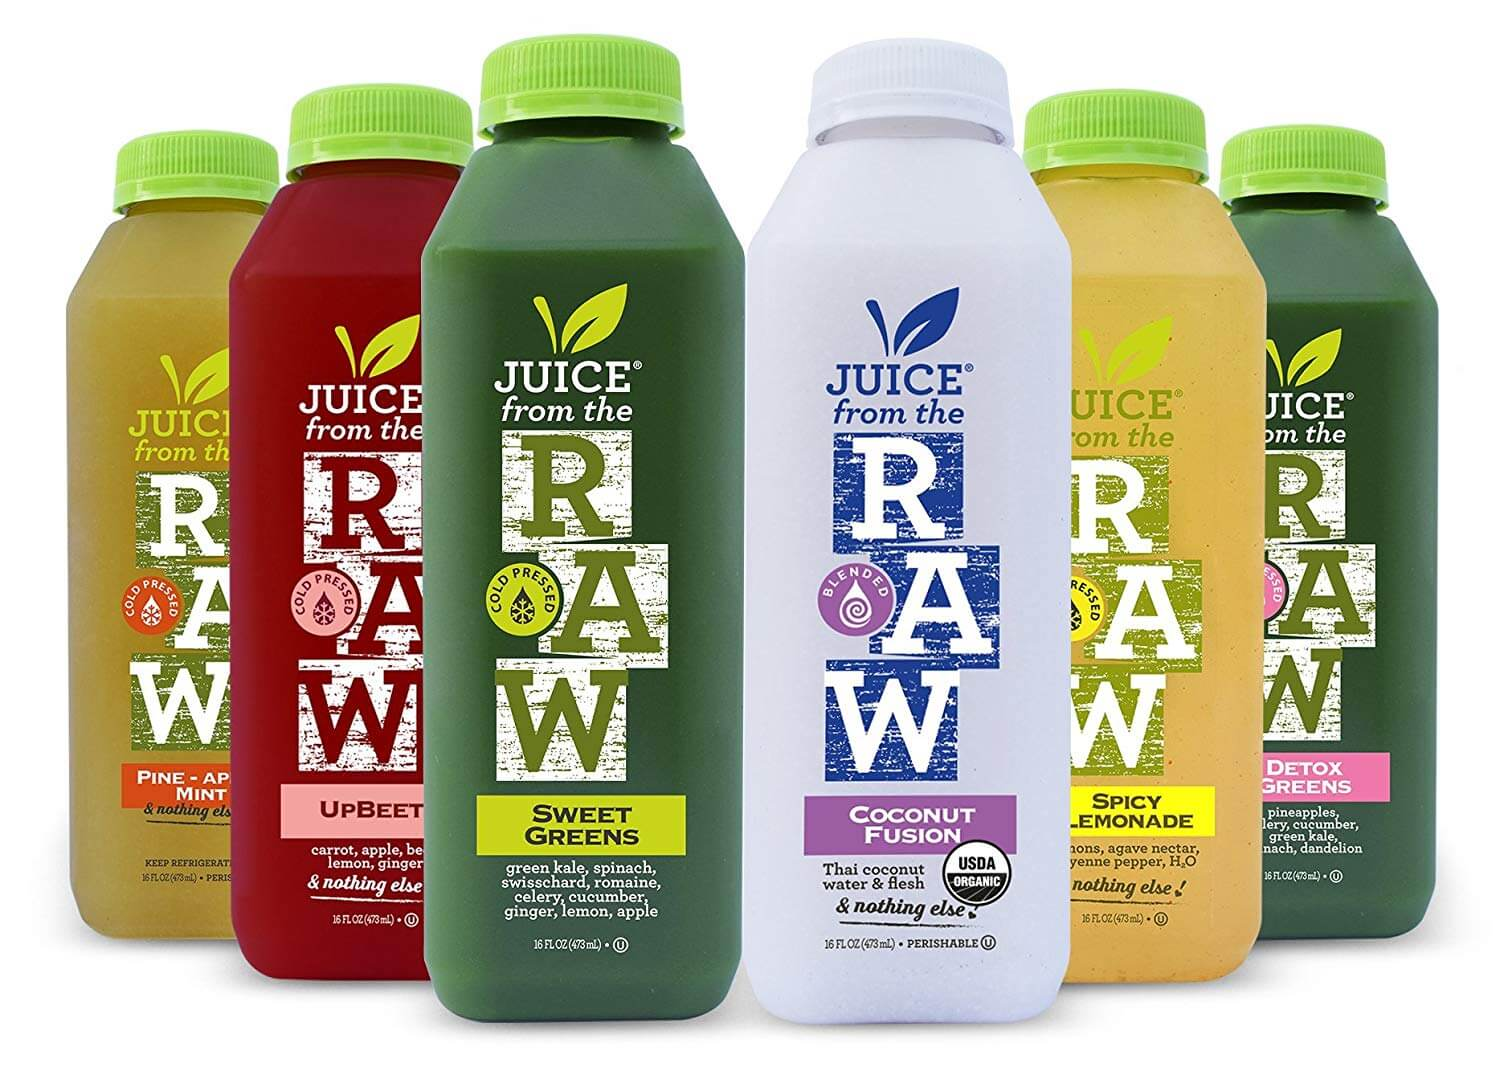 Juice From the RAW 3 Day ORGANIC Juice Cleanse